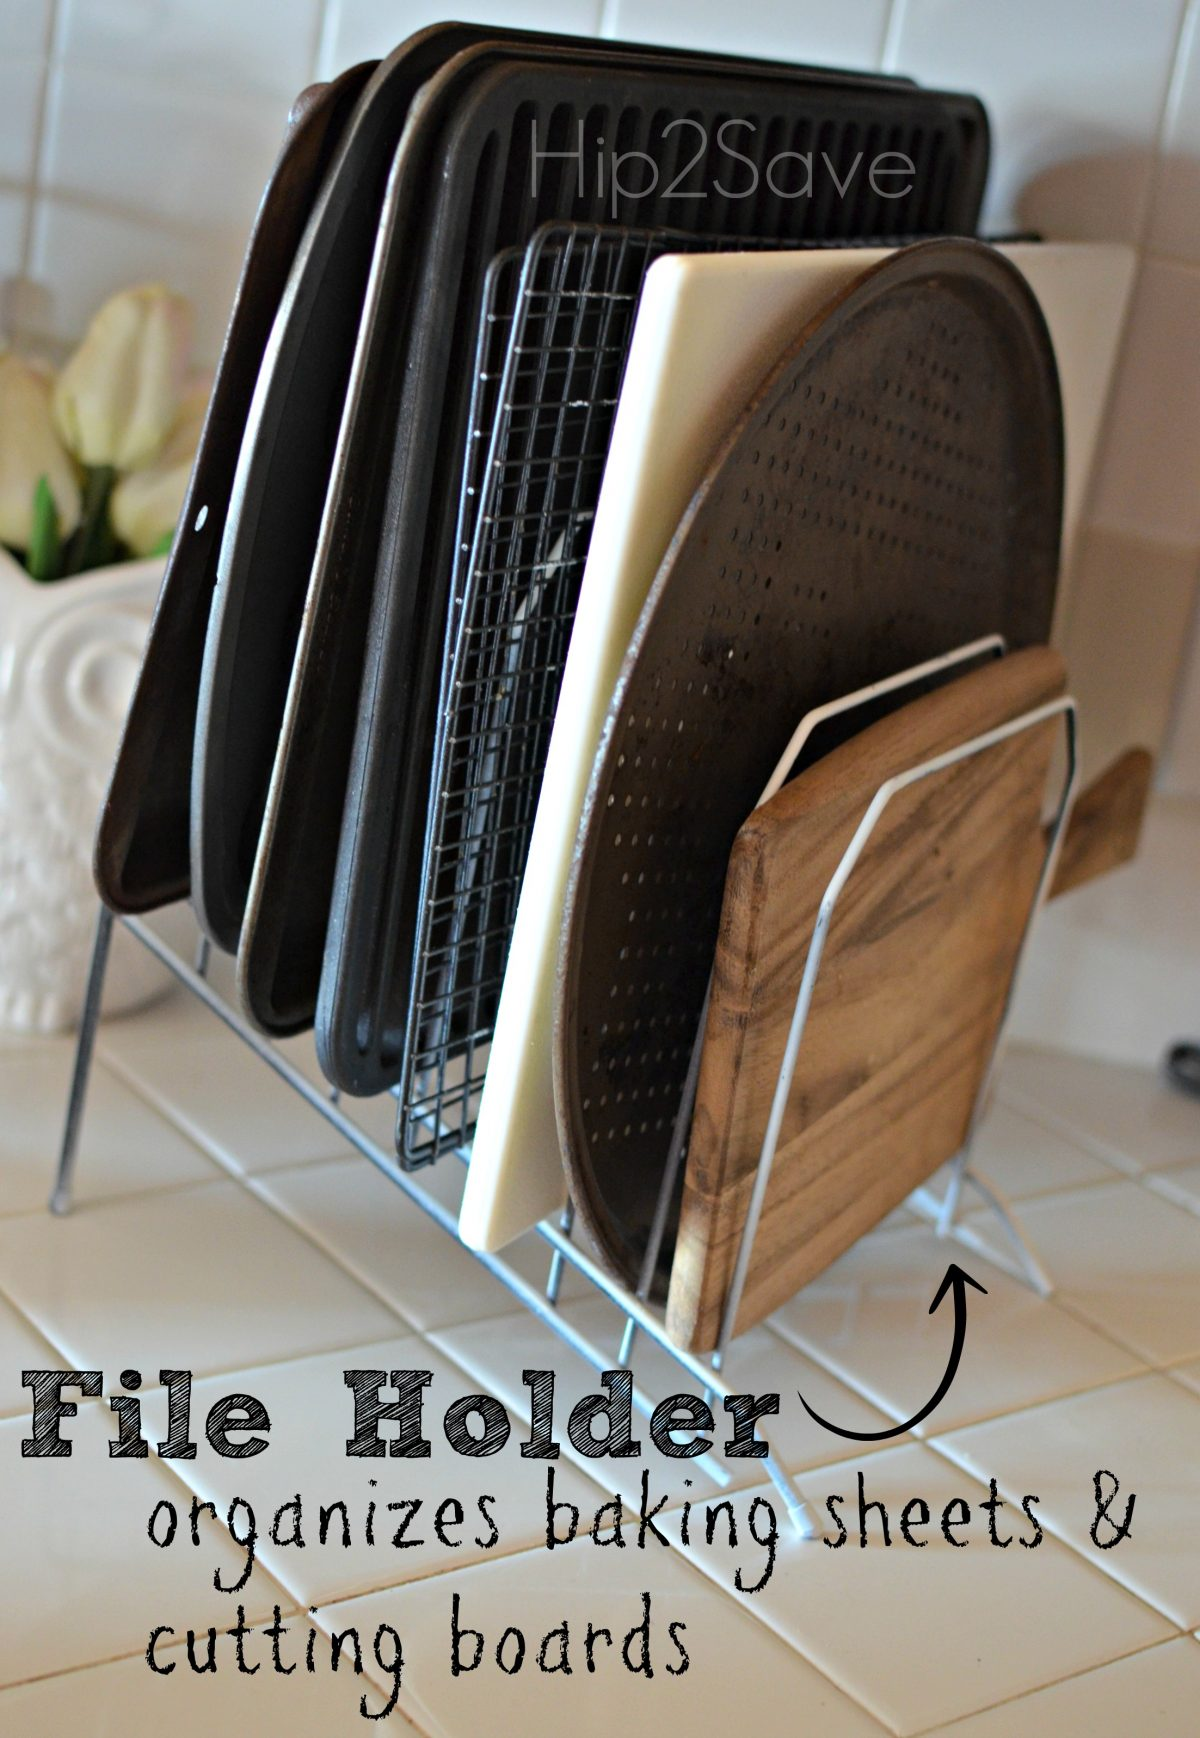 organize baking sheets and cutting boards with file holders